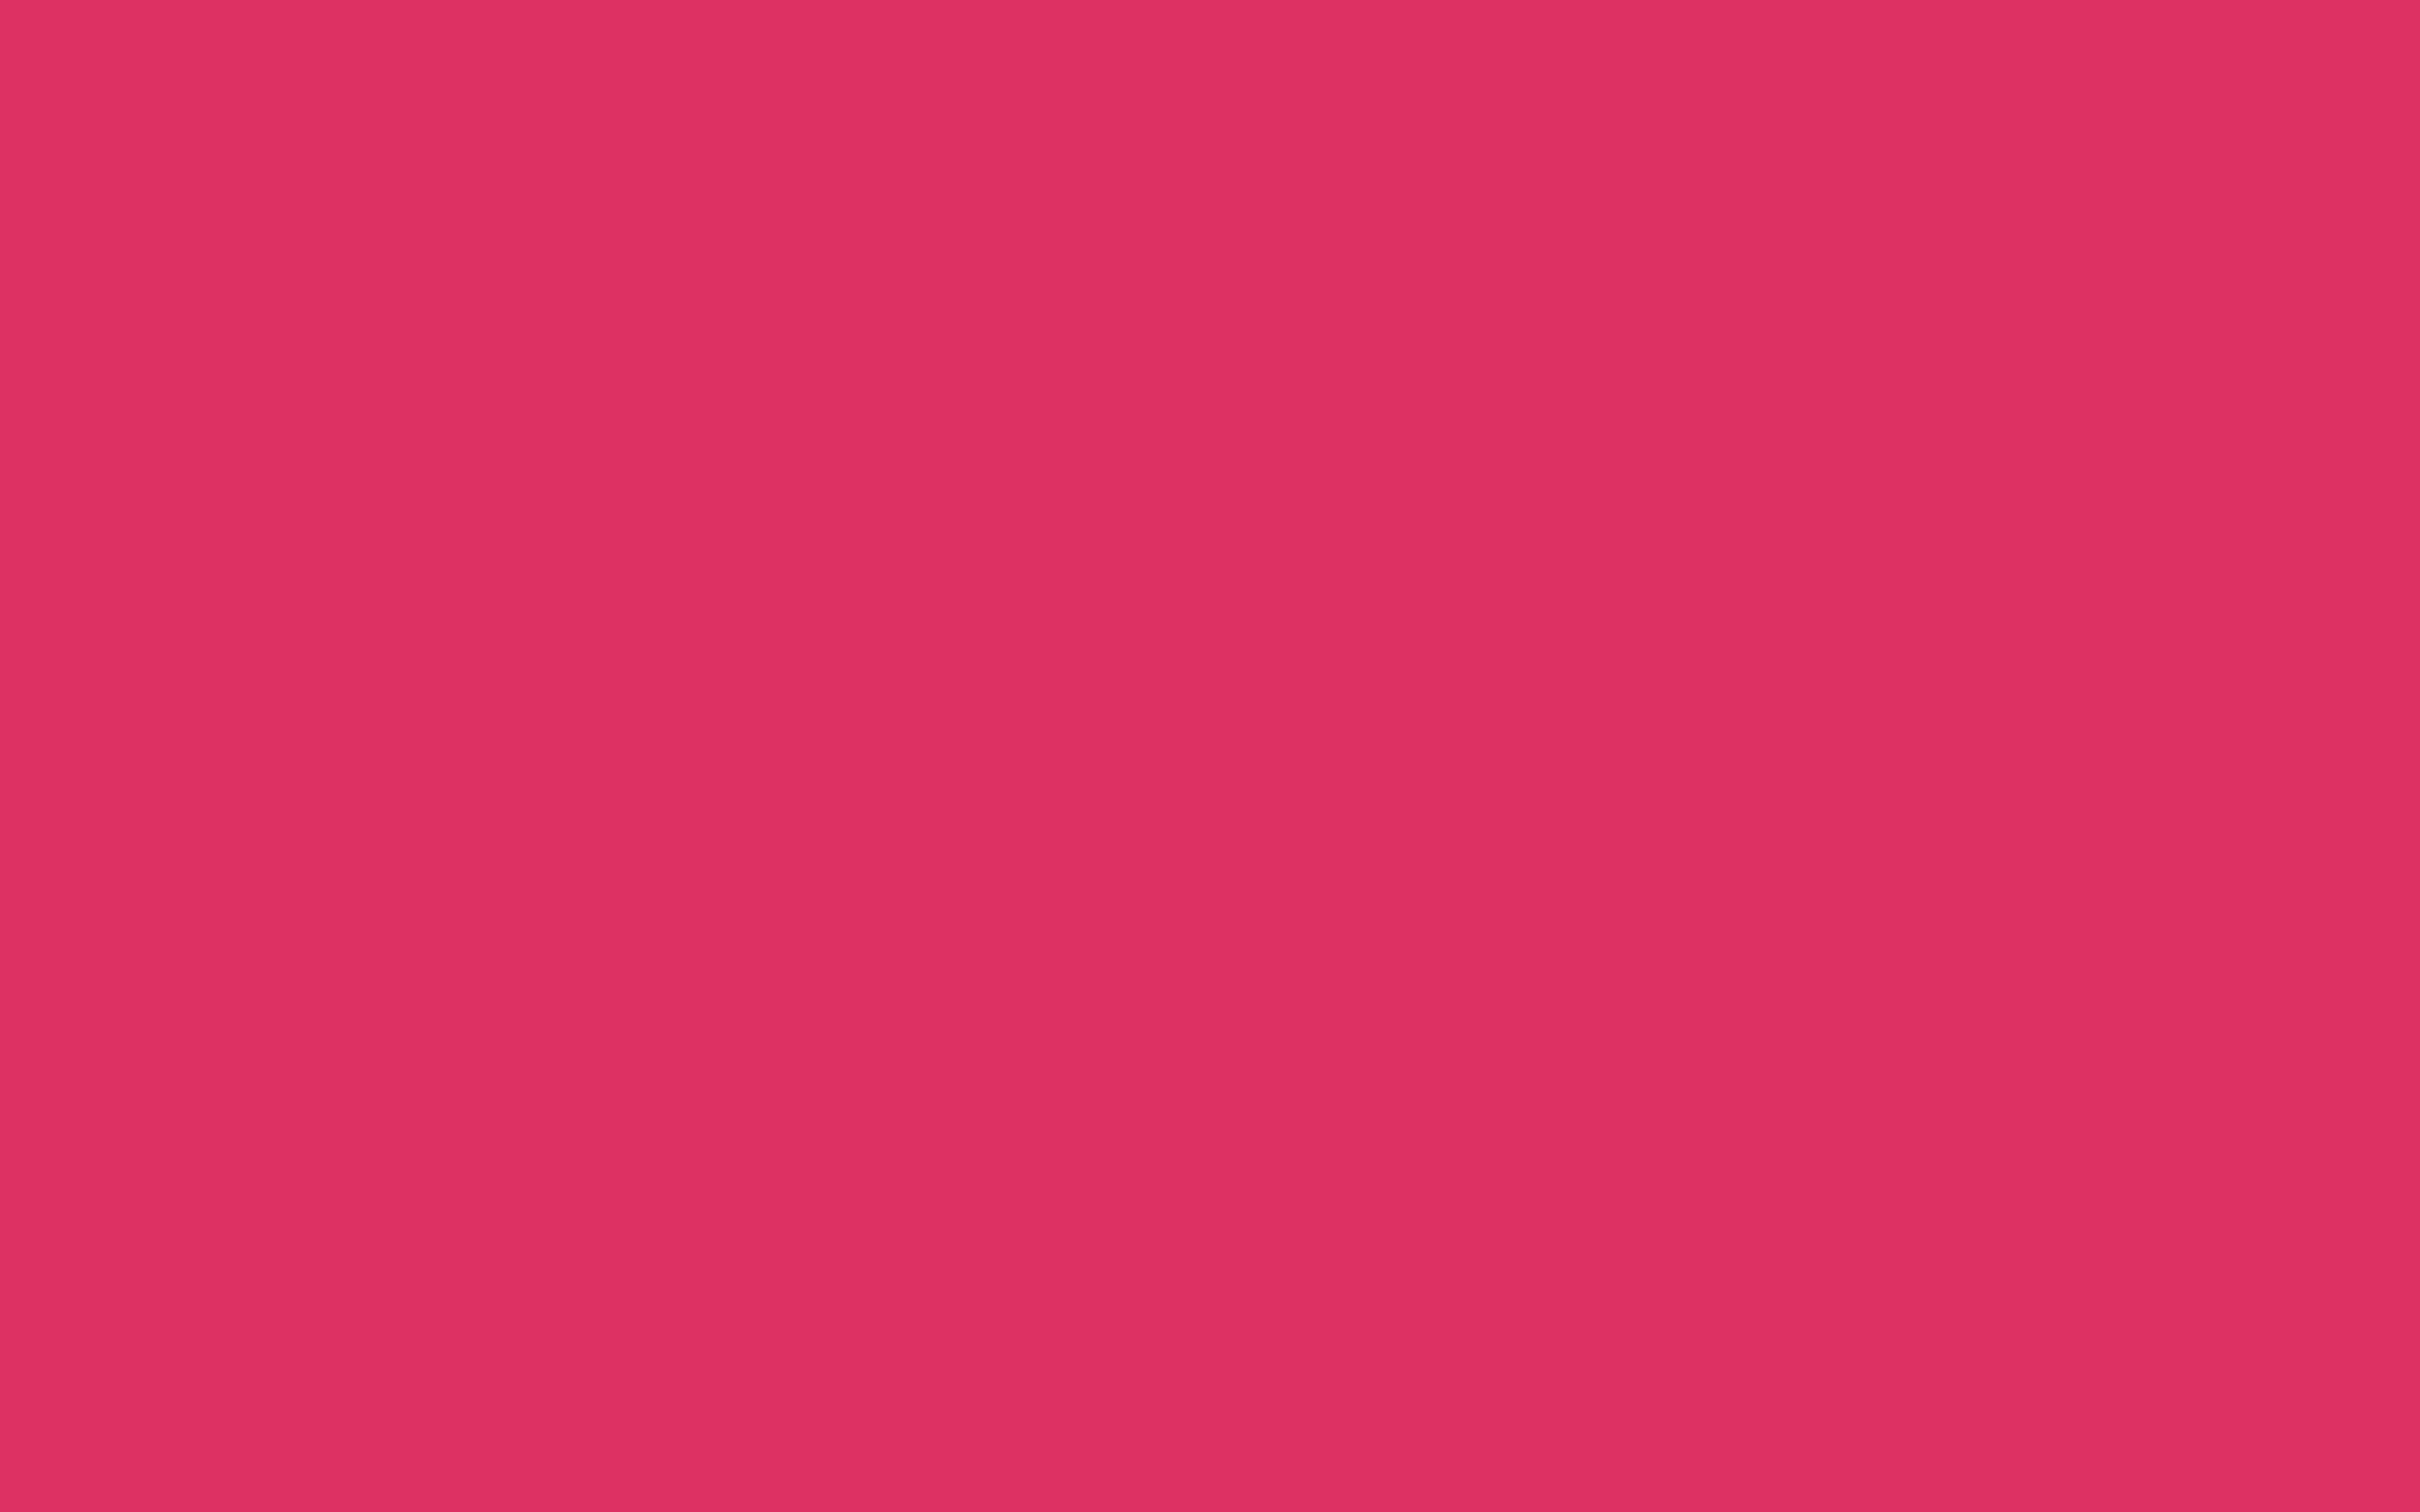 2560x1600 Cherry Solid Color Background